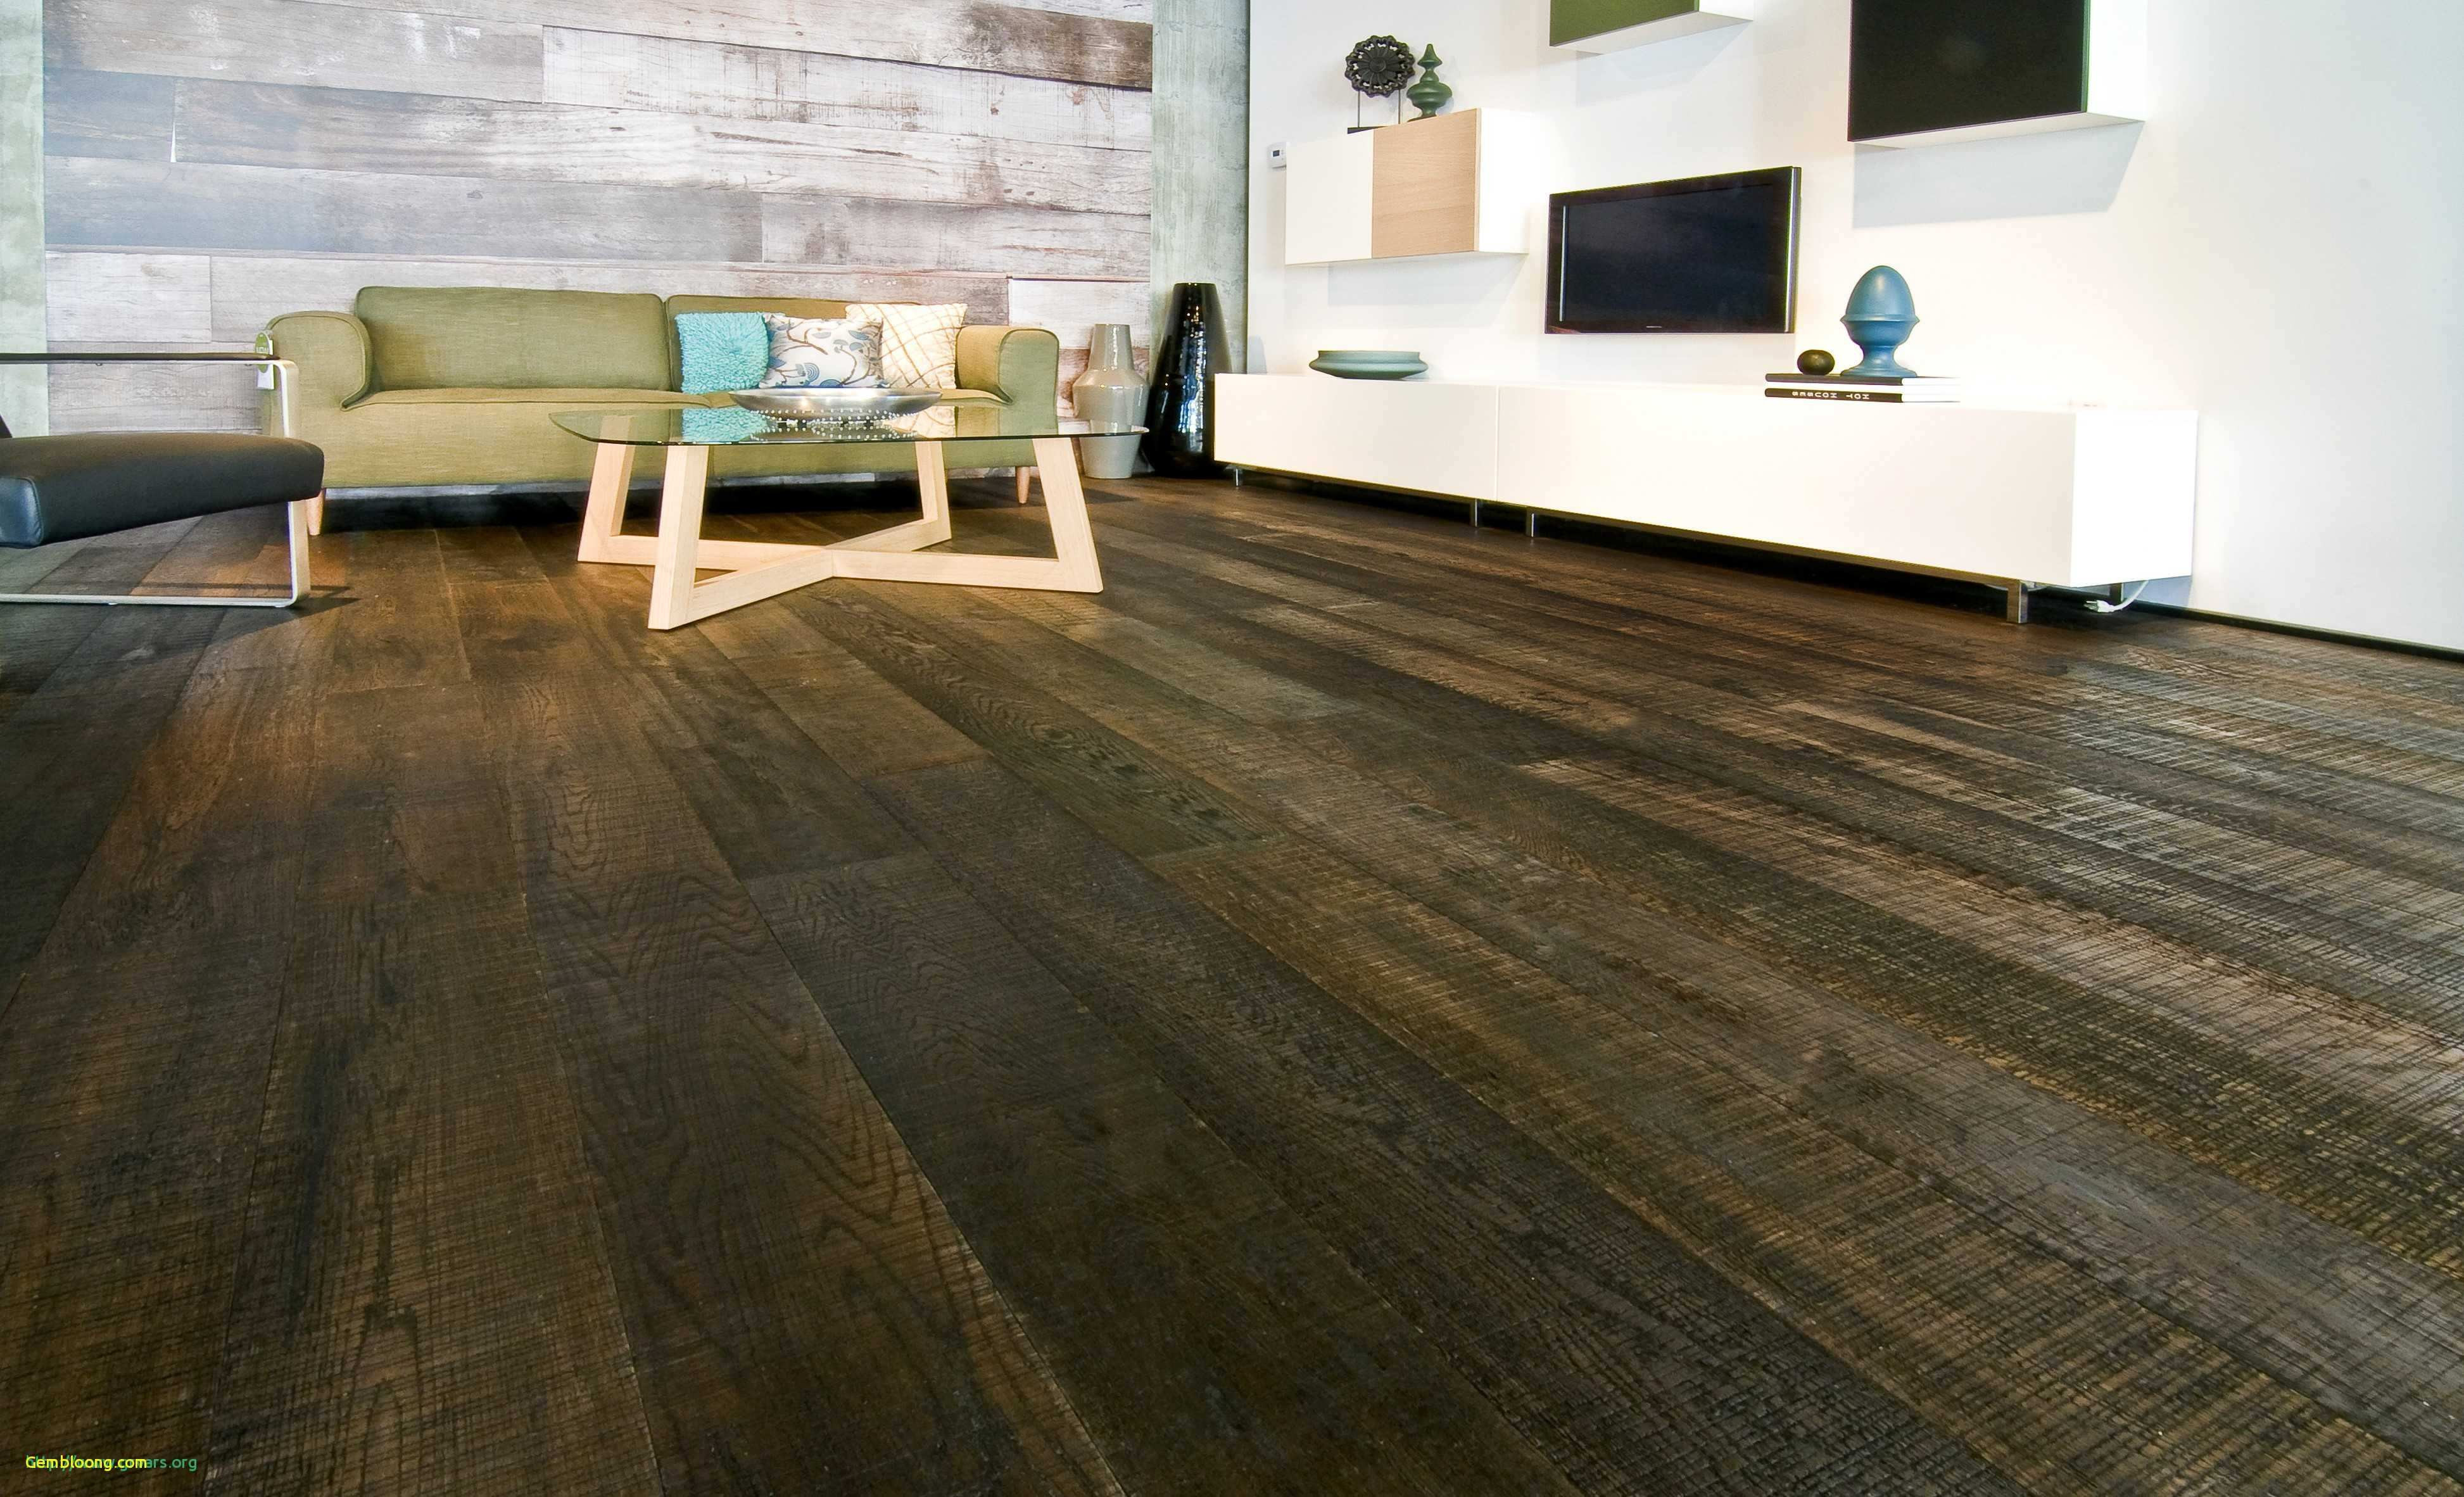 hardwood floor ideas pictures of wood for floors facesinnature with best wood flooring for the money impressionnant engaging discount hardwood flooring 5 where to buy inspirational